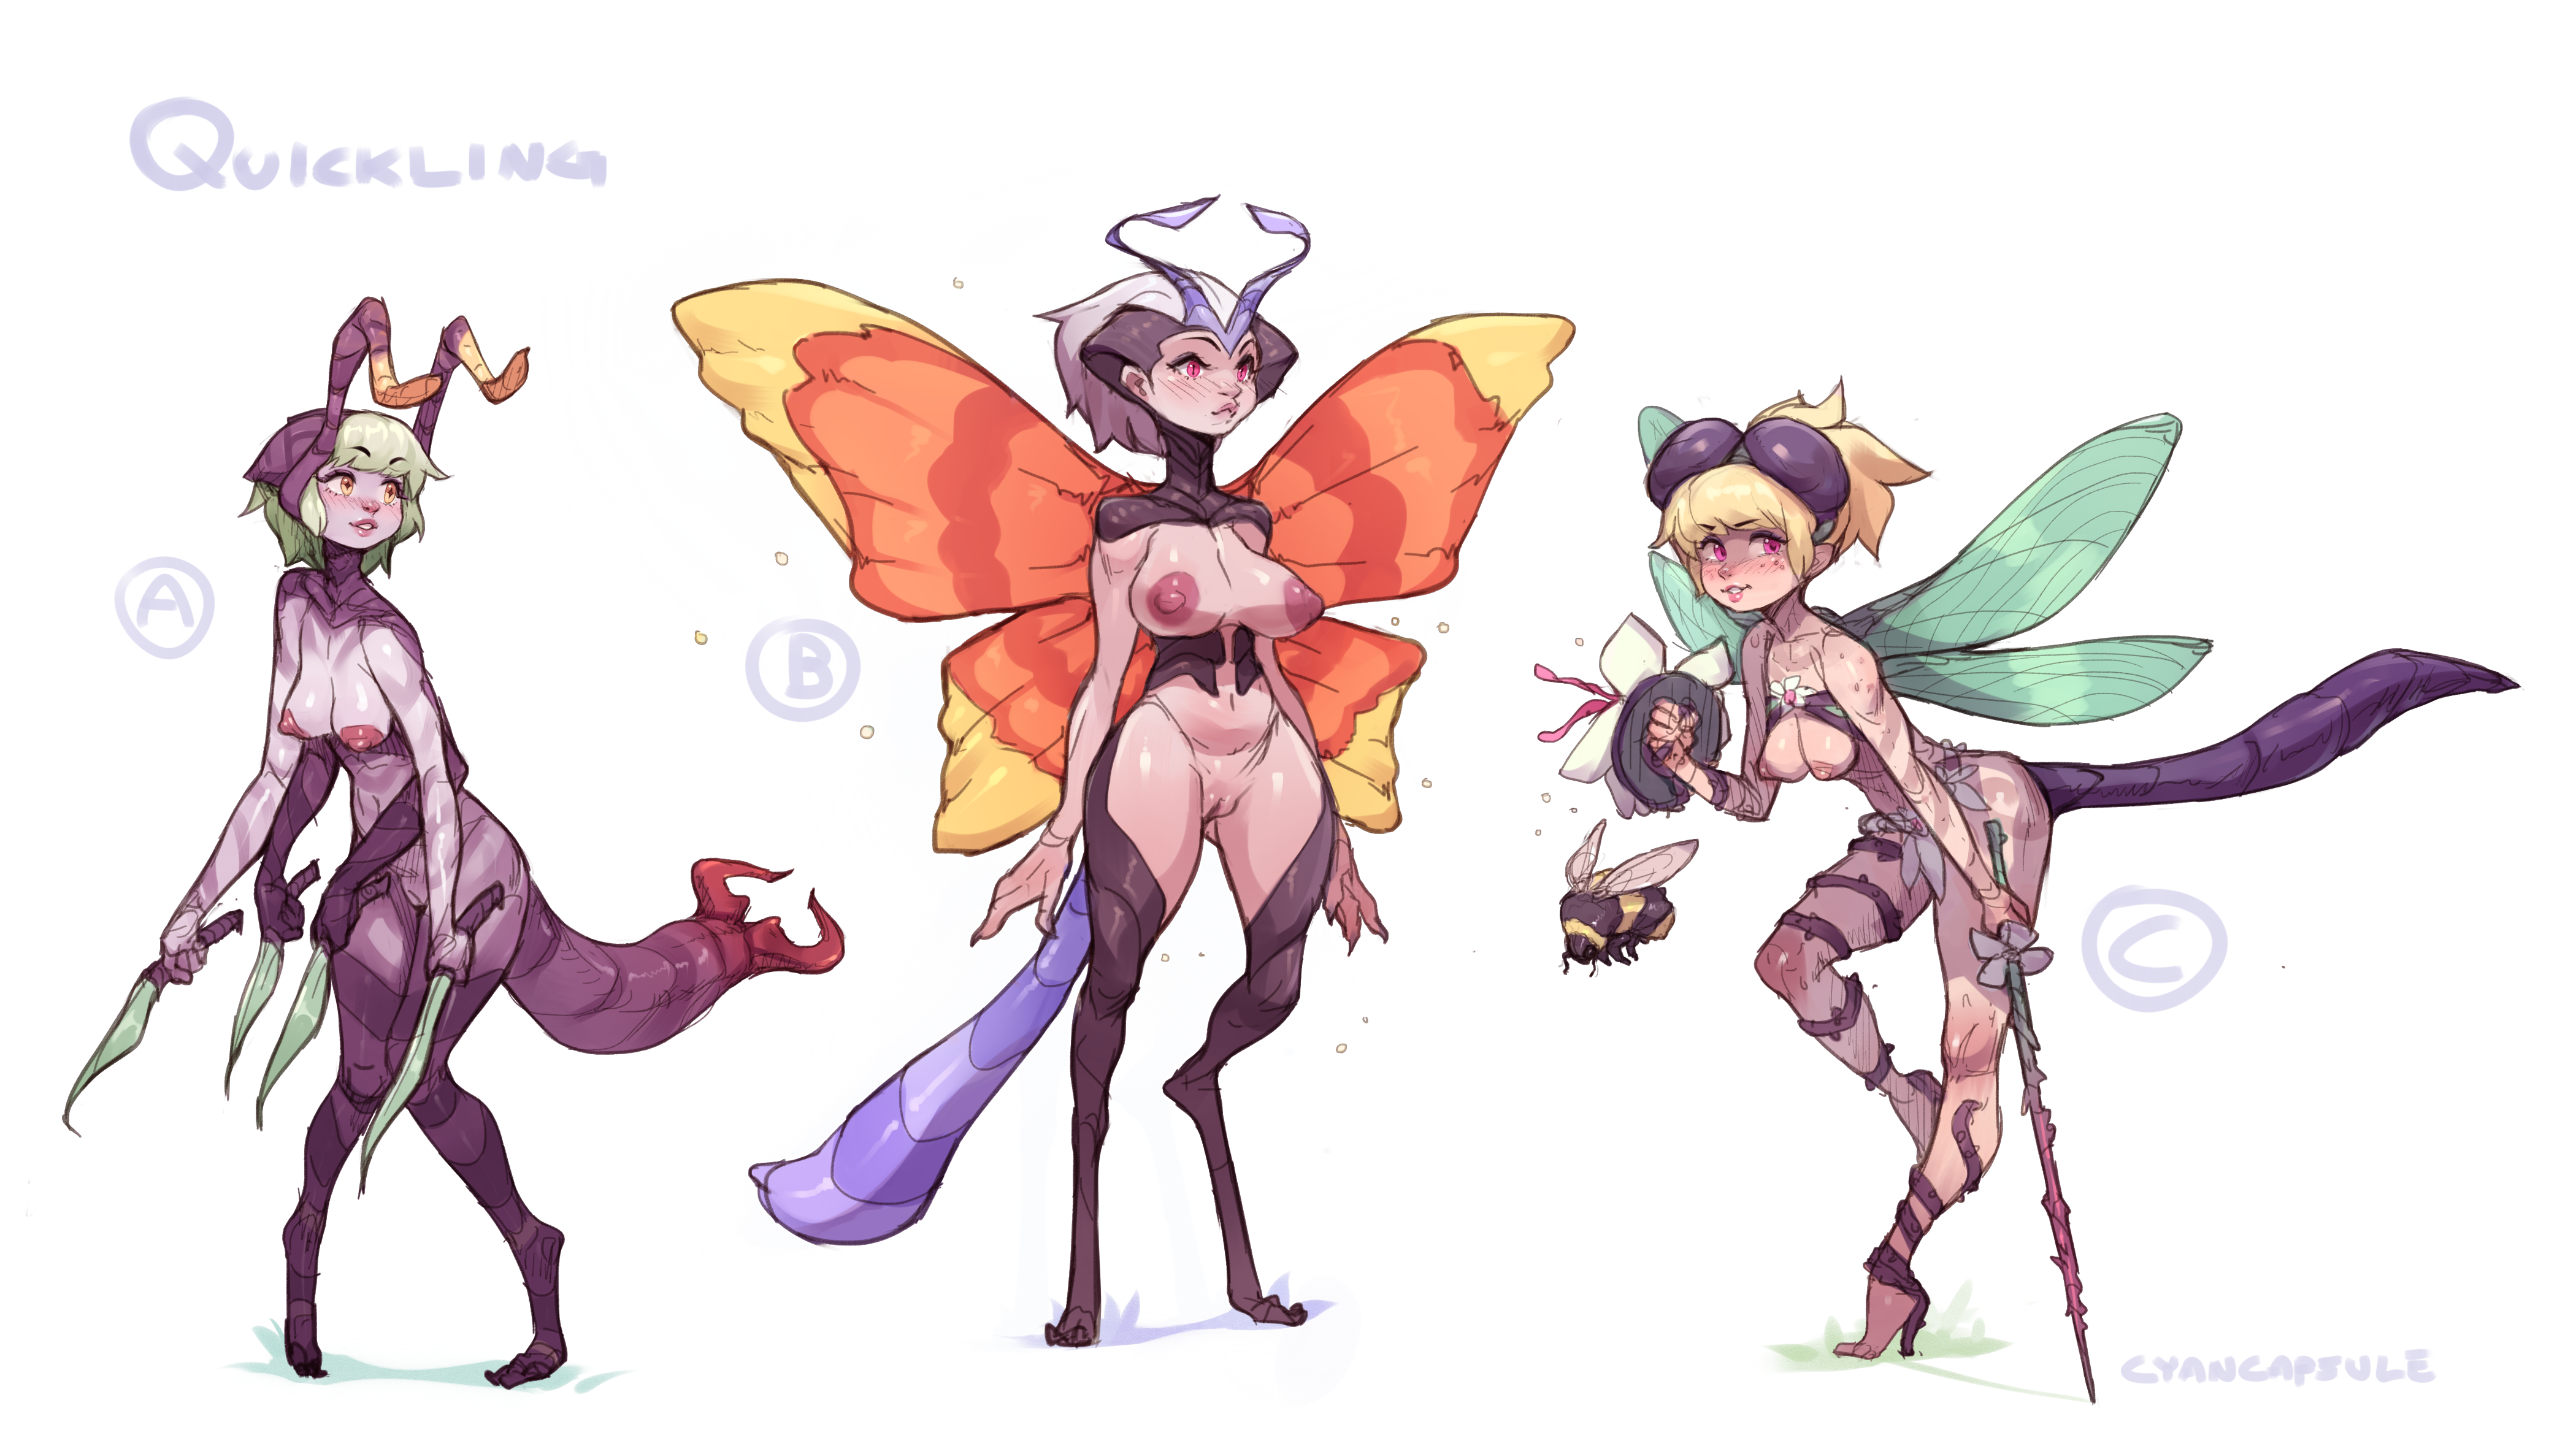 Quickling/ Bug Lady Concepts